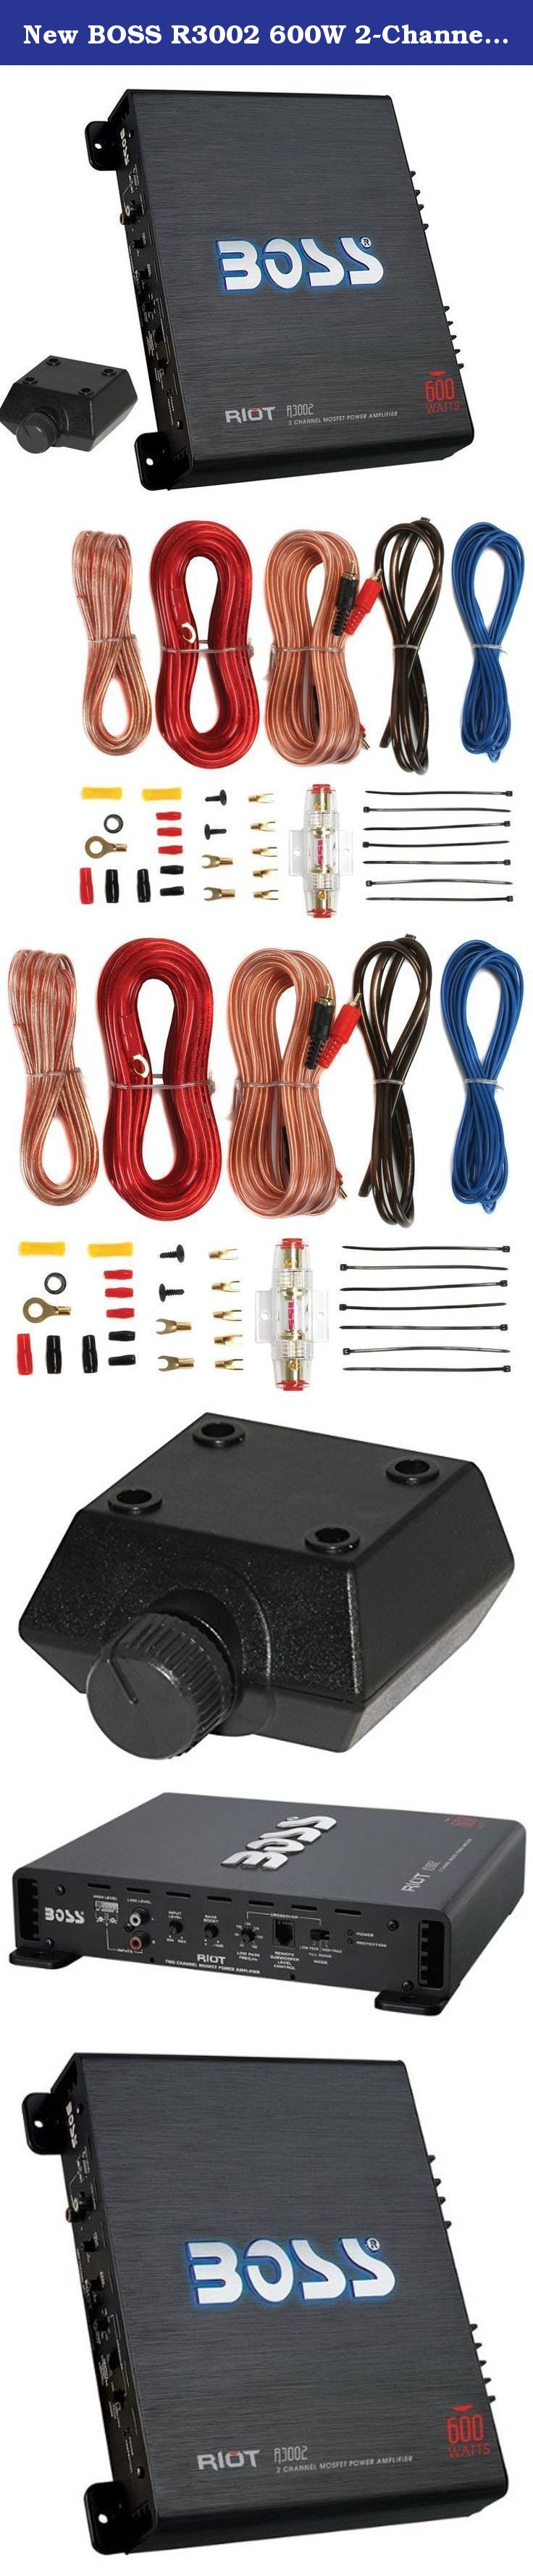 New Boss R3002 600w 2 Channel Car Amplifier 8 Gauge Power Acoustik 8ga Amp Wiring Kit Install